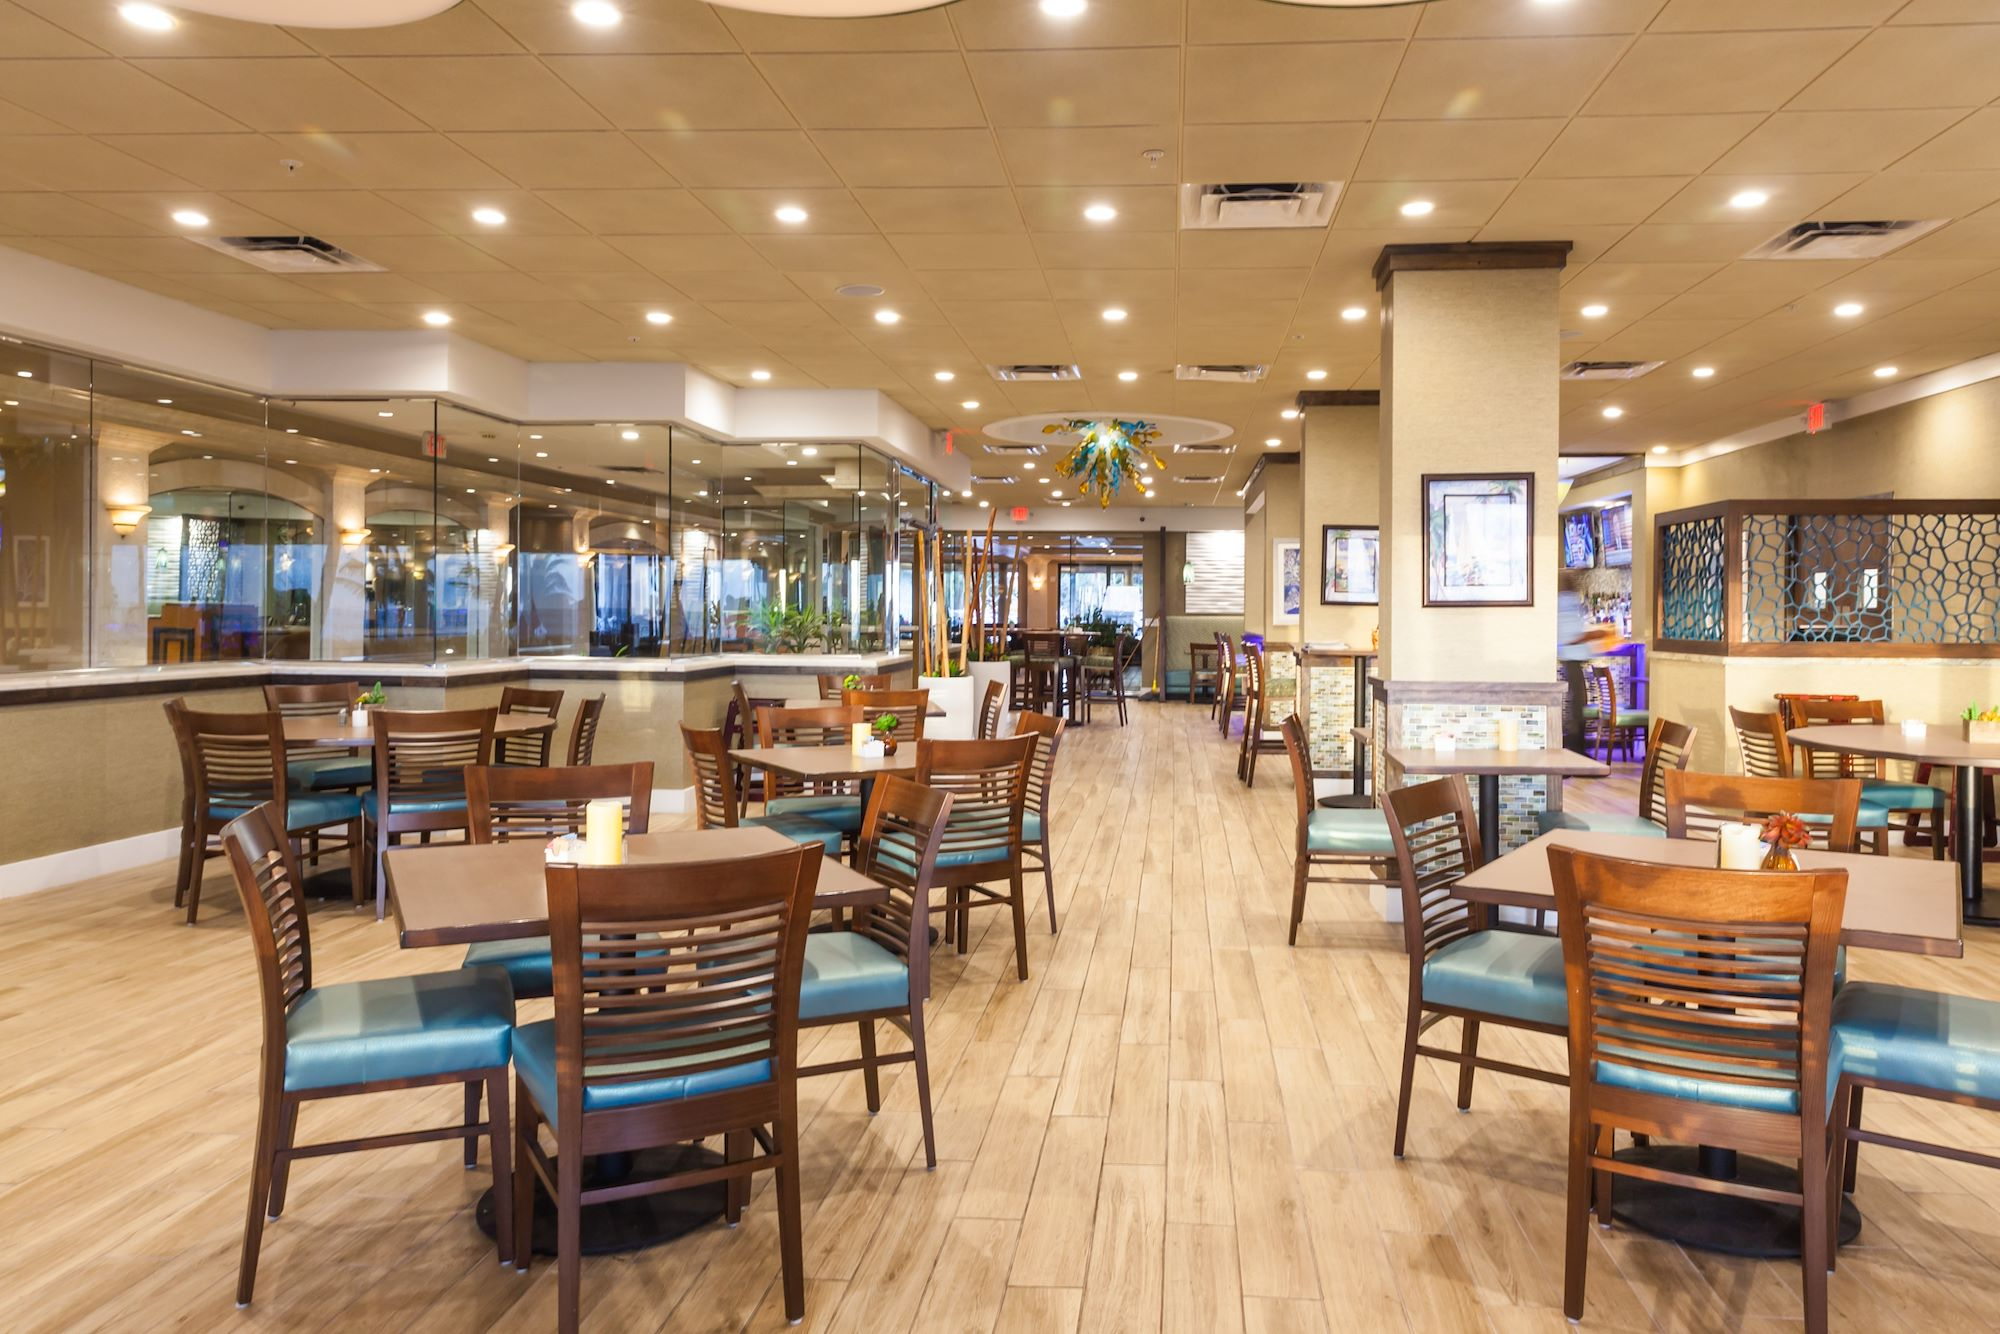 Cedar's Palace Restaurant and Bar at our Fort Lauderdale Hotel